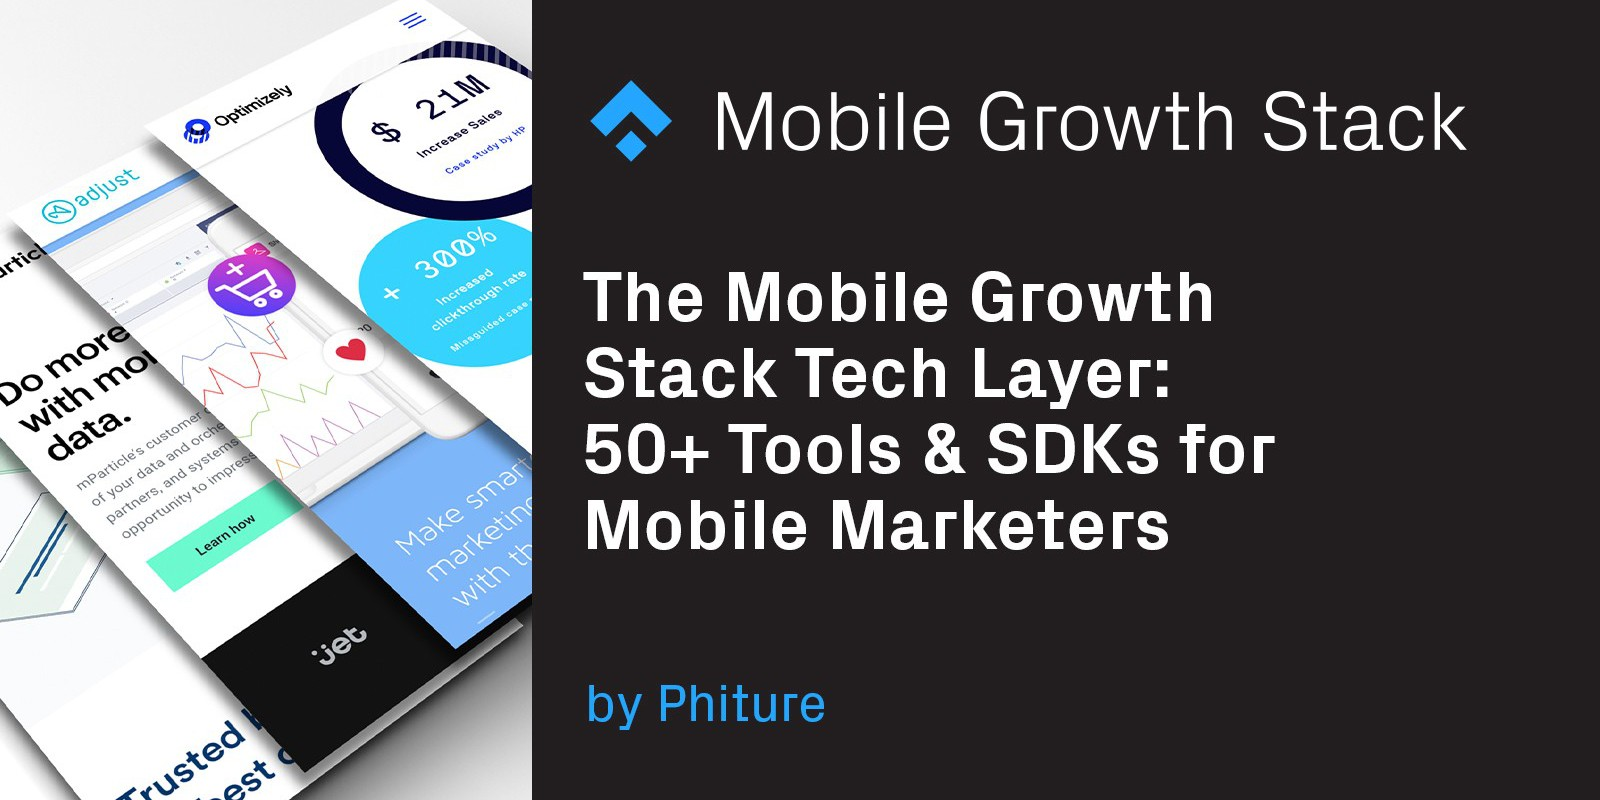 The Mobile Growth Stack Tech Layer: 50+ Tools & SDKs for Mobile Marketers